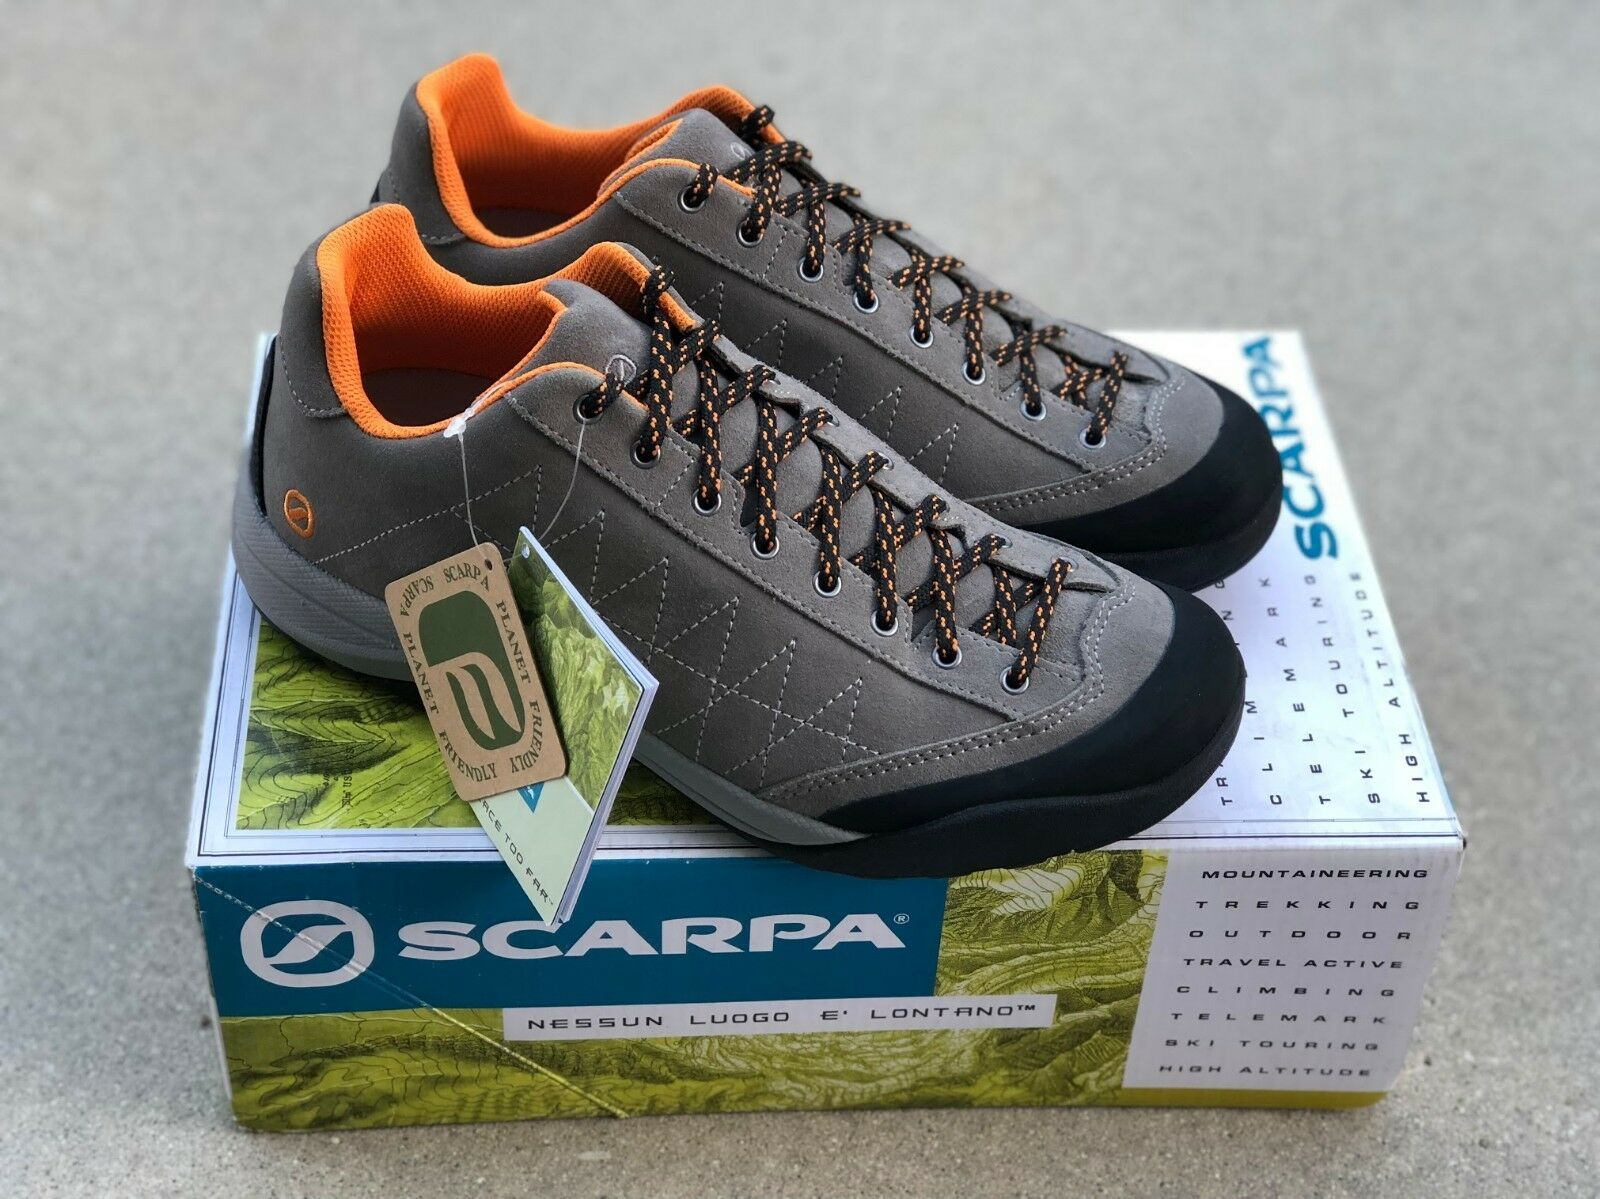 Scarpa MYSTIC LITE Sportive lightweight Approach shoe  Taupe orange Men's Size7.5  save up to 30-50% off